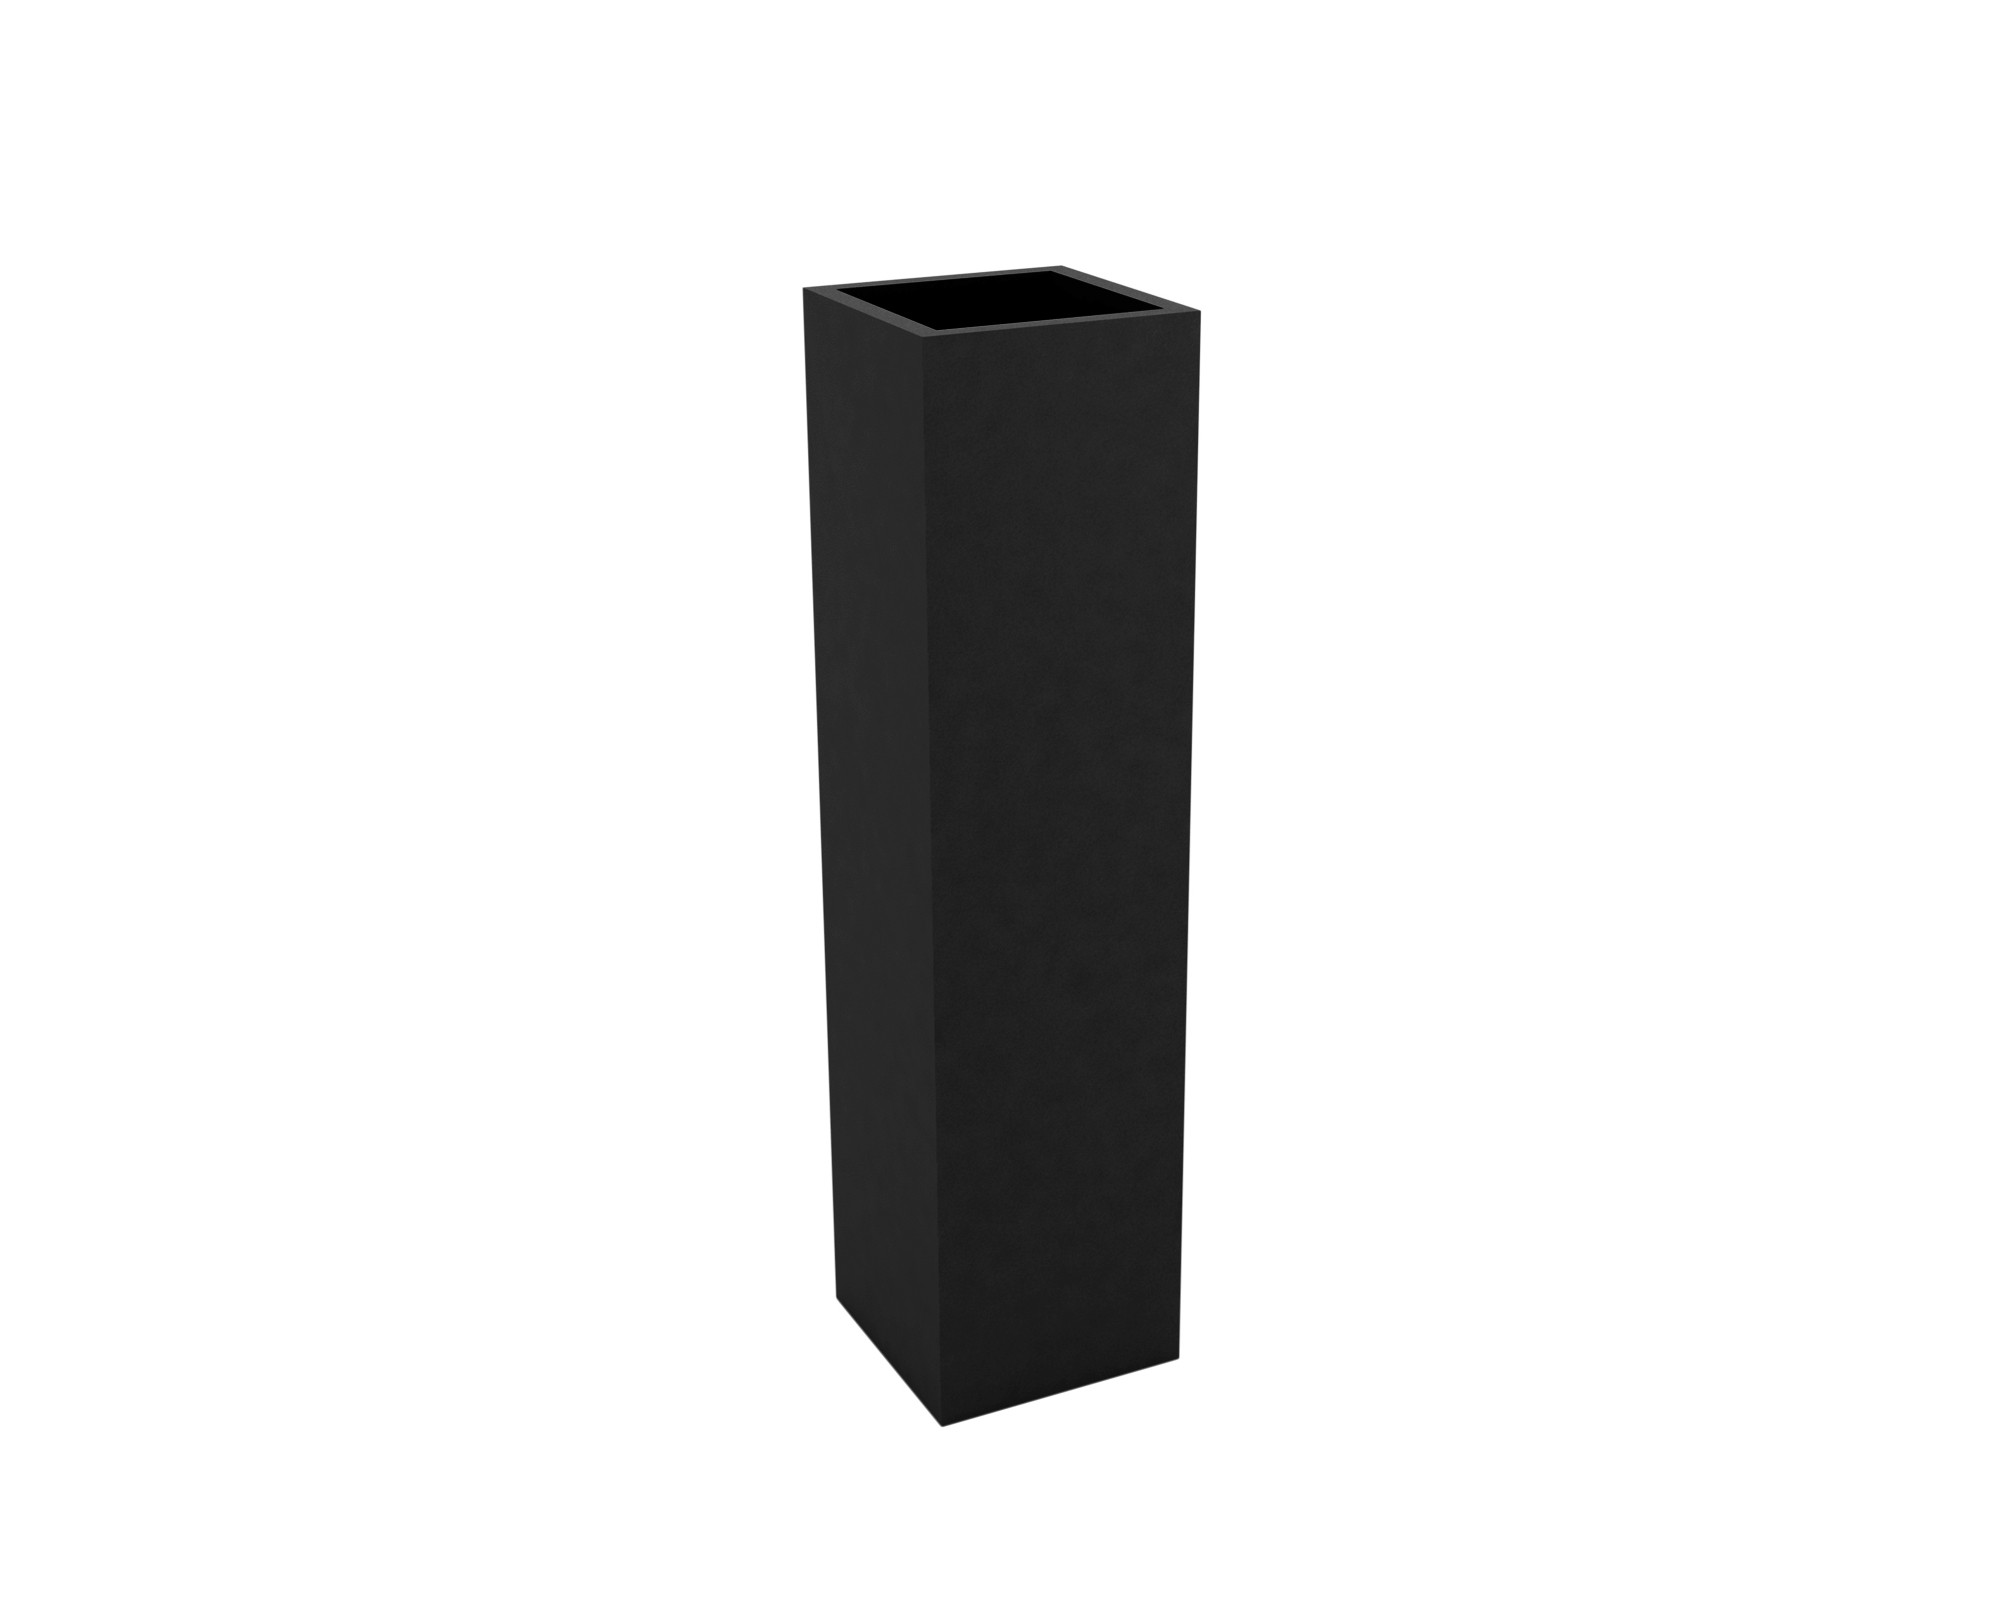 Square Tower Pot